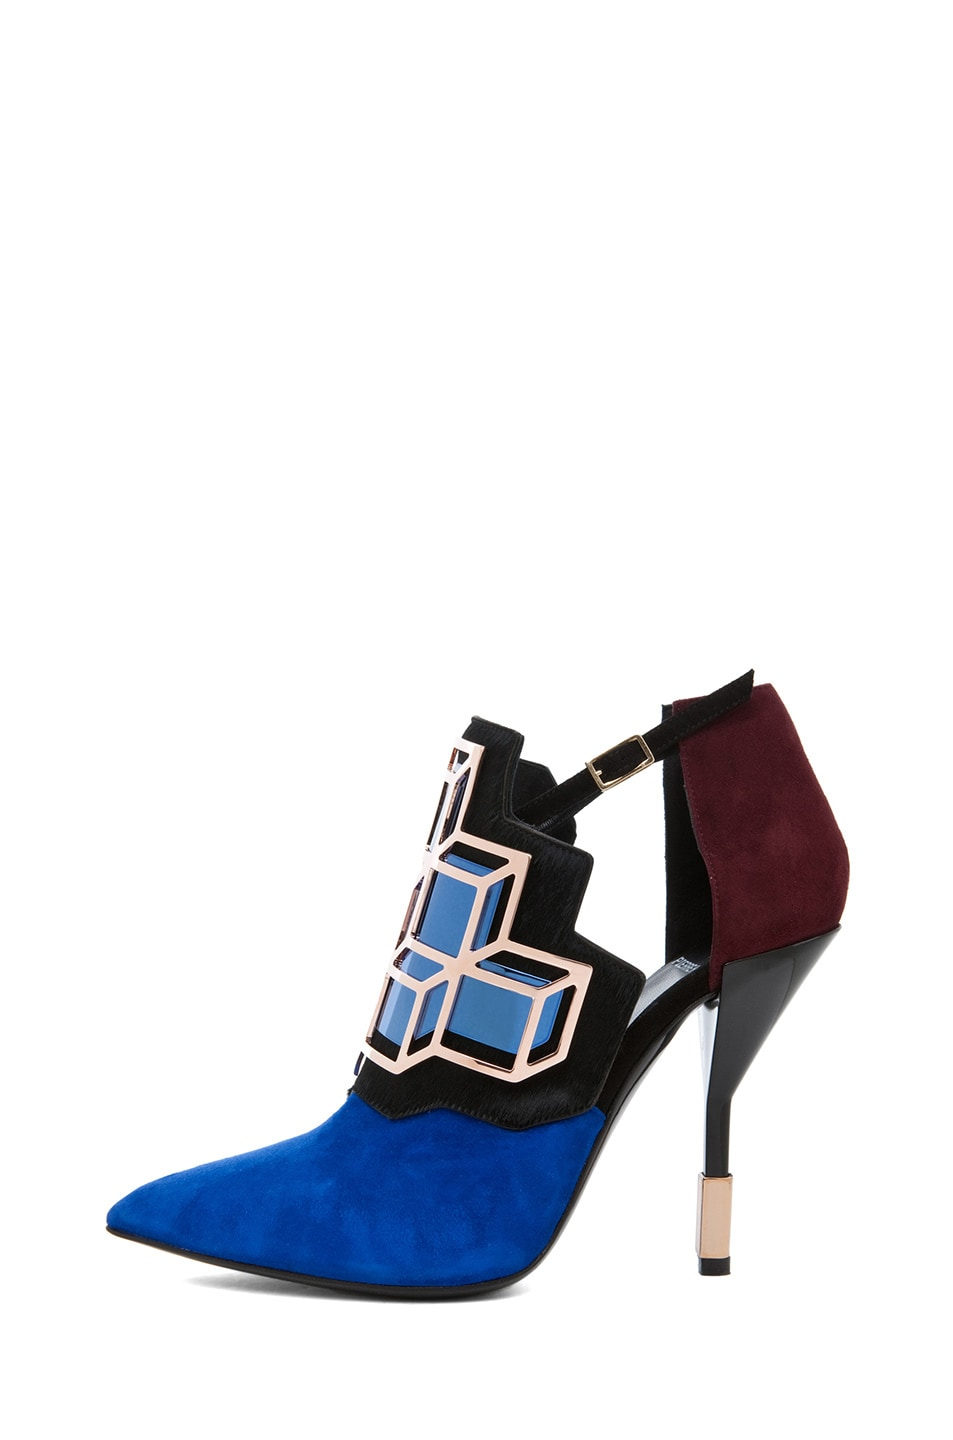 Image 1 of Pierre Hardy Suede Cube Bootie in Trico